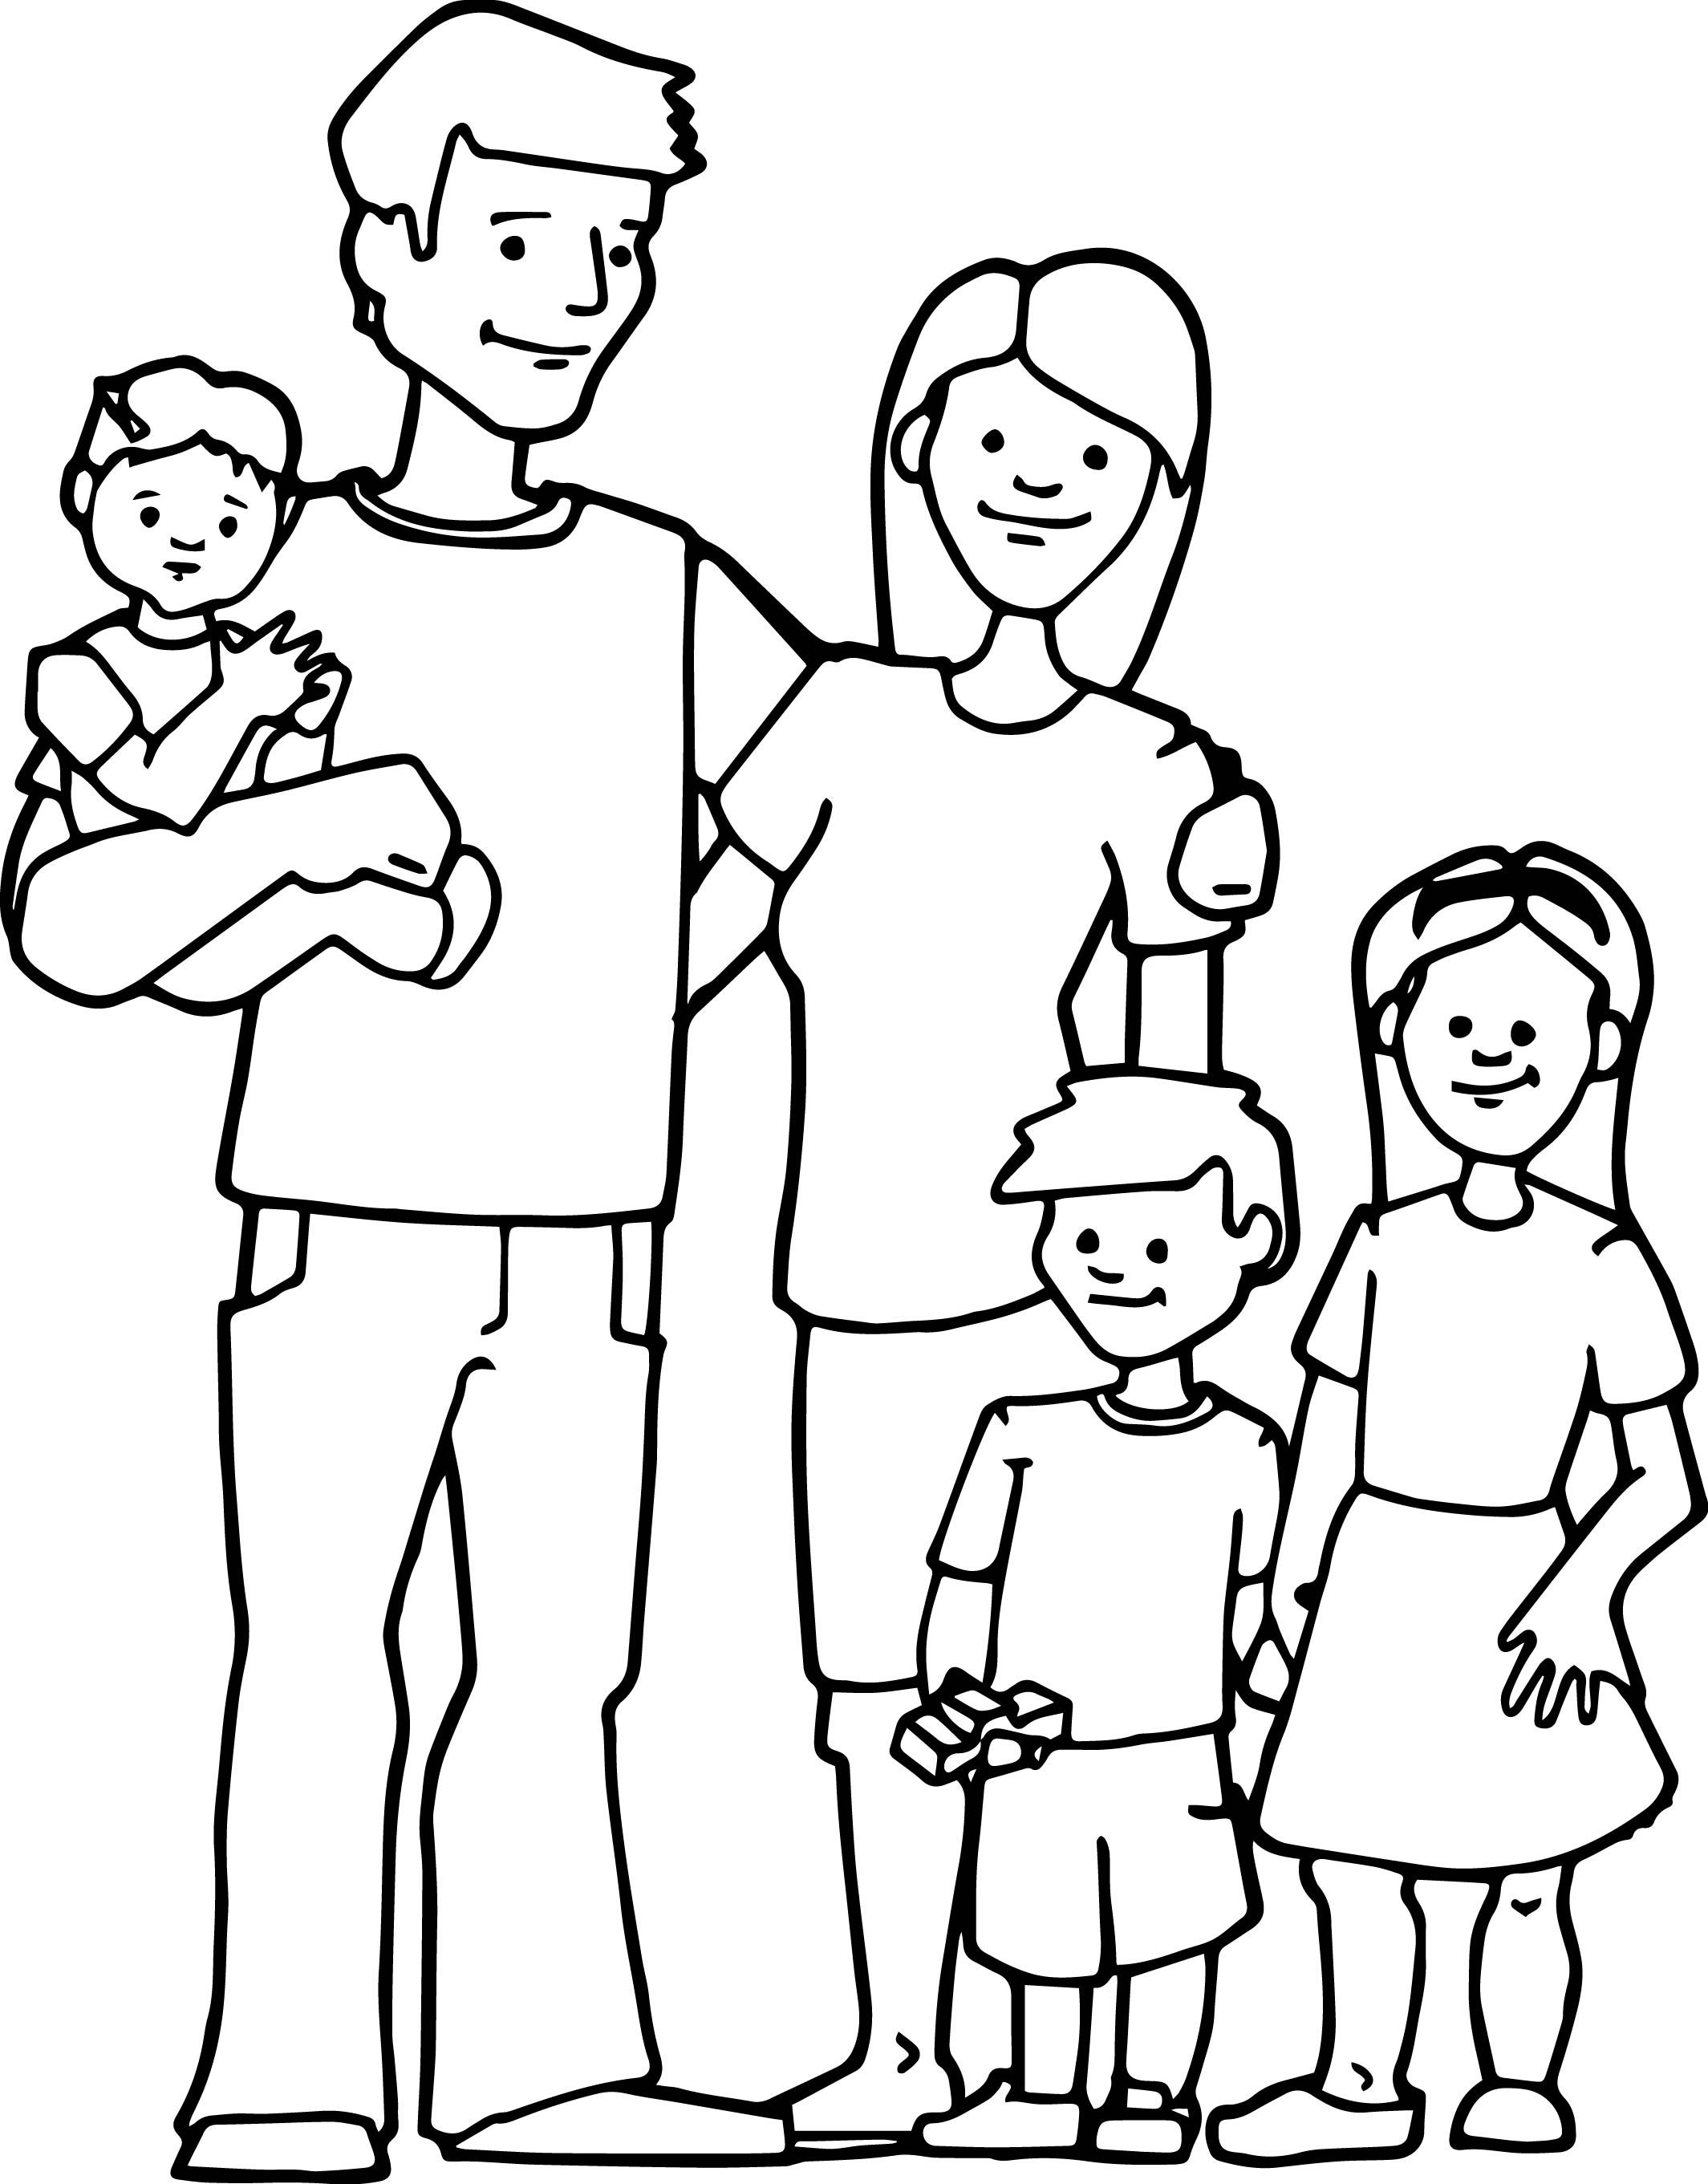 family kids coloring pagejpg 21292722 - Coloring For Preschool